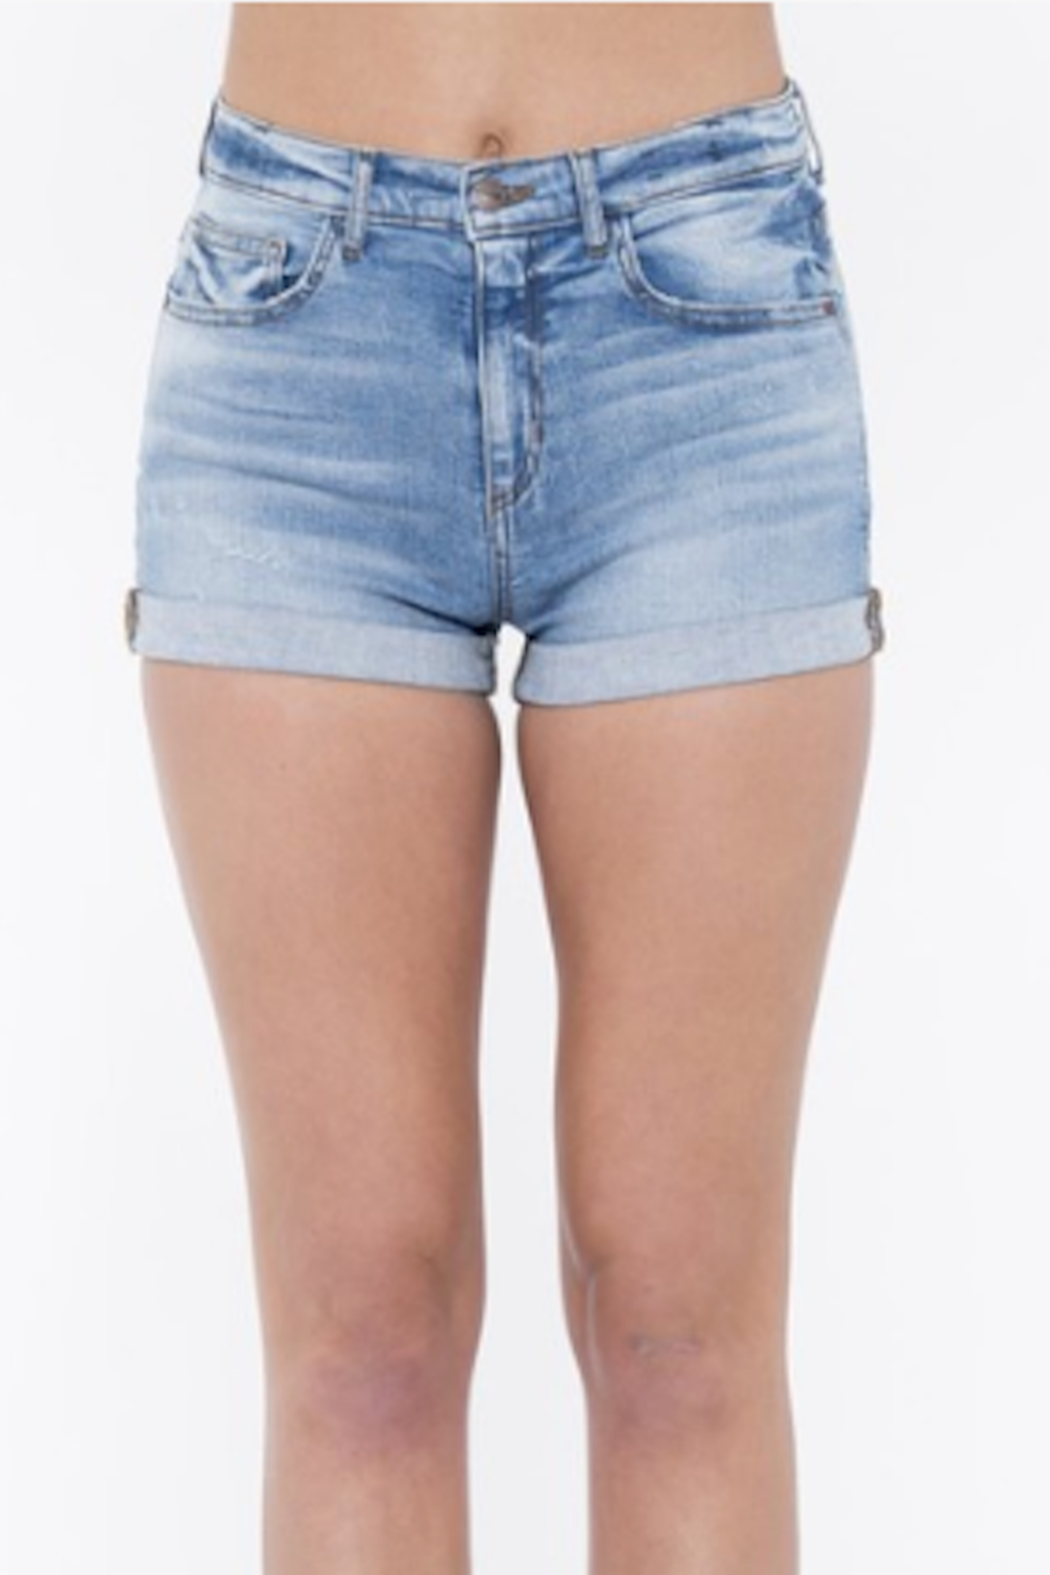 Sneak Peak High Rise Boyfriend Shorts with Rolled Up Hem - Front Full Image